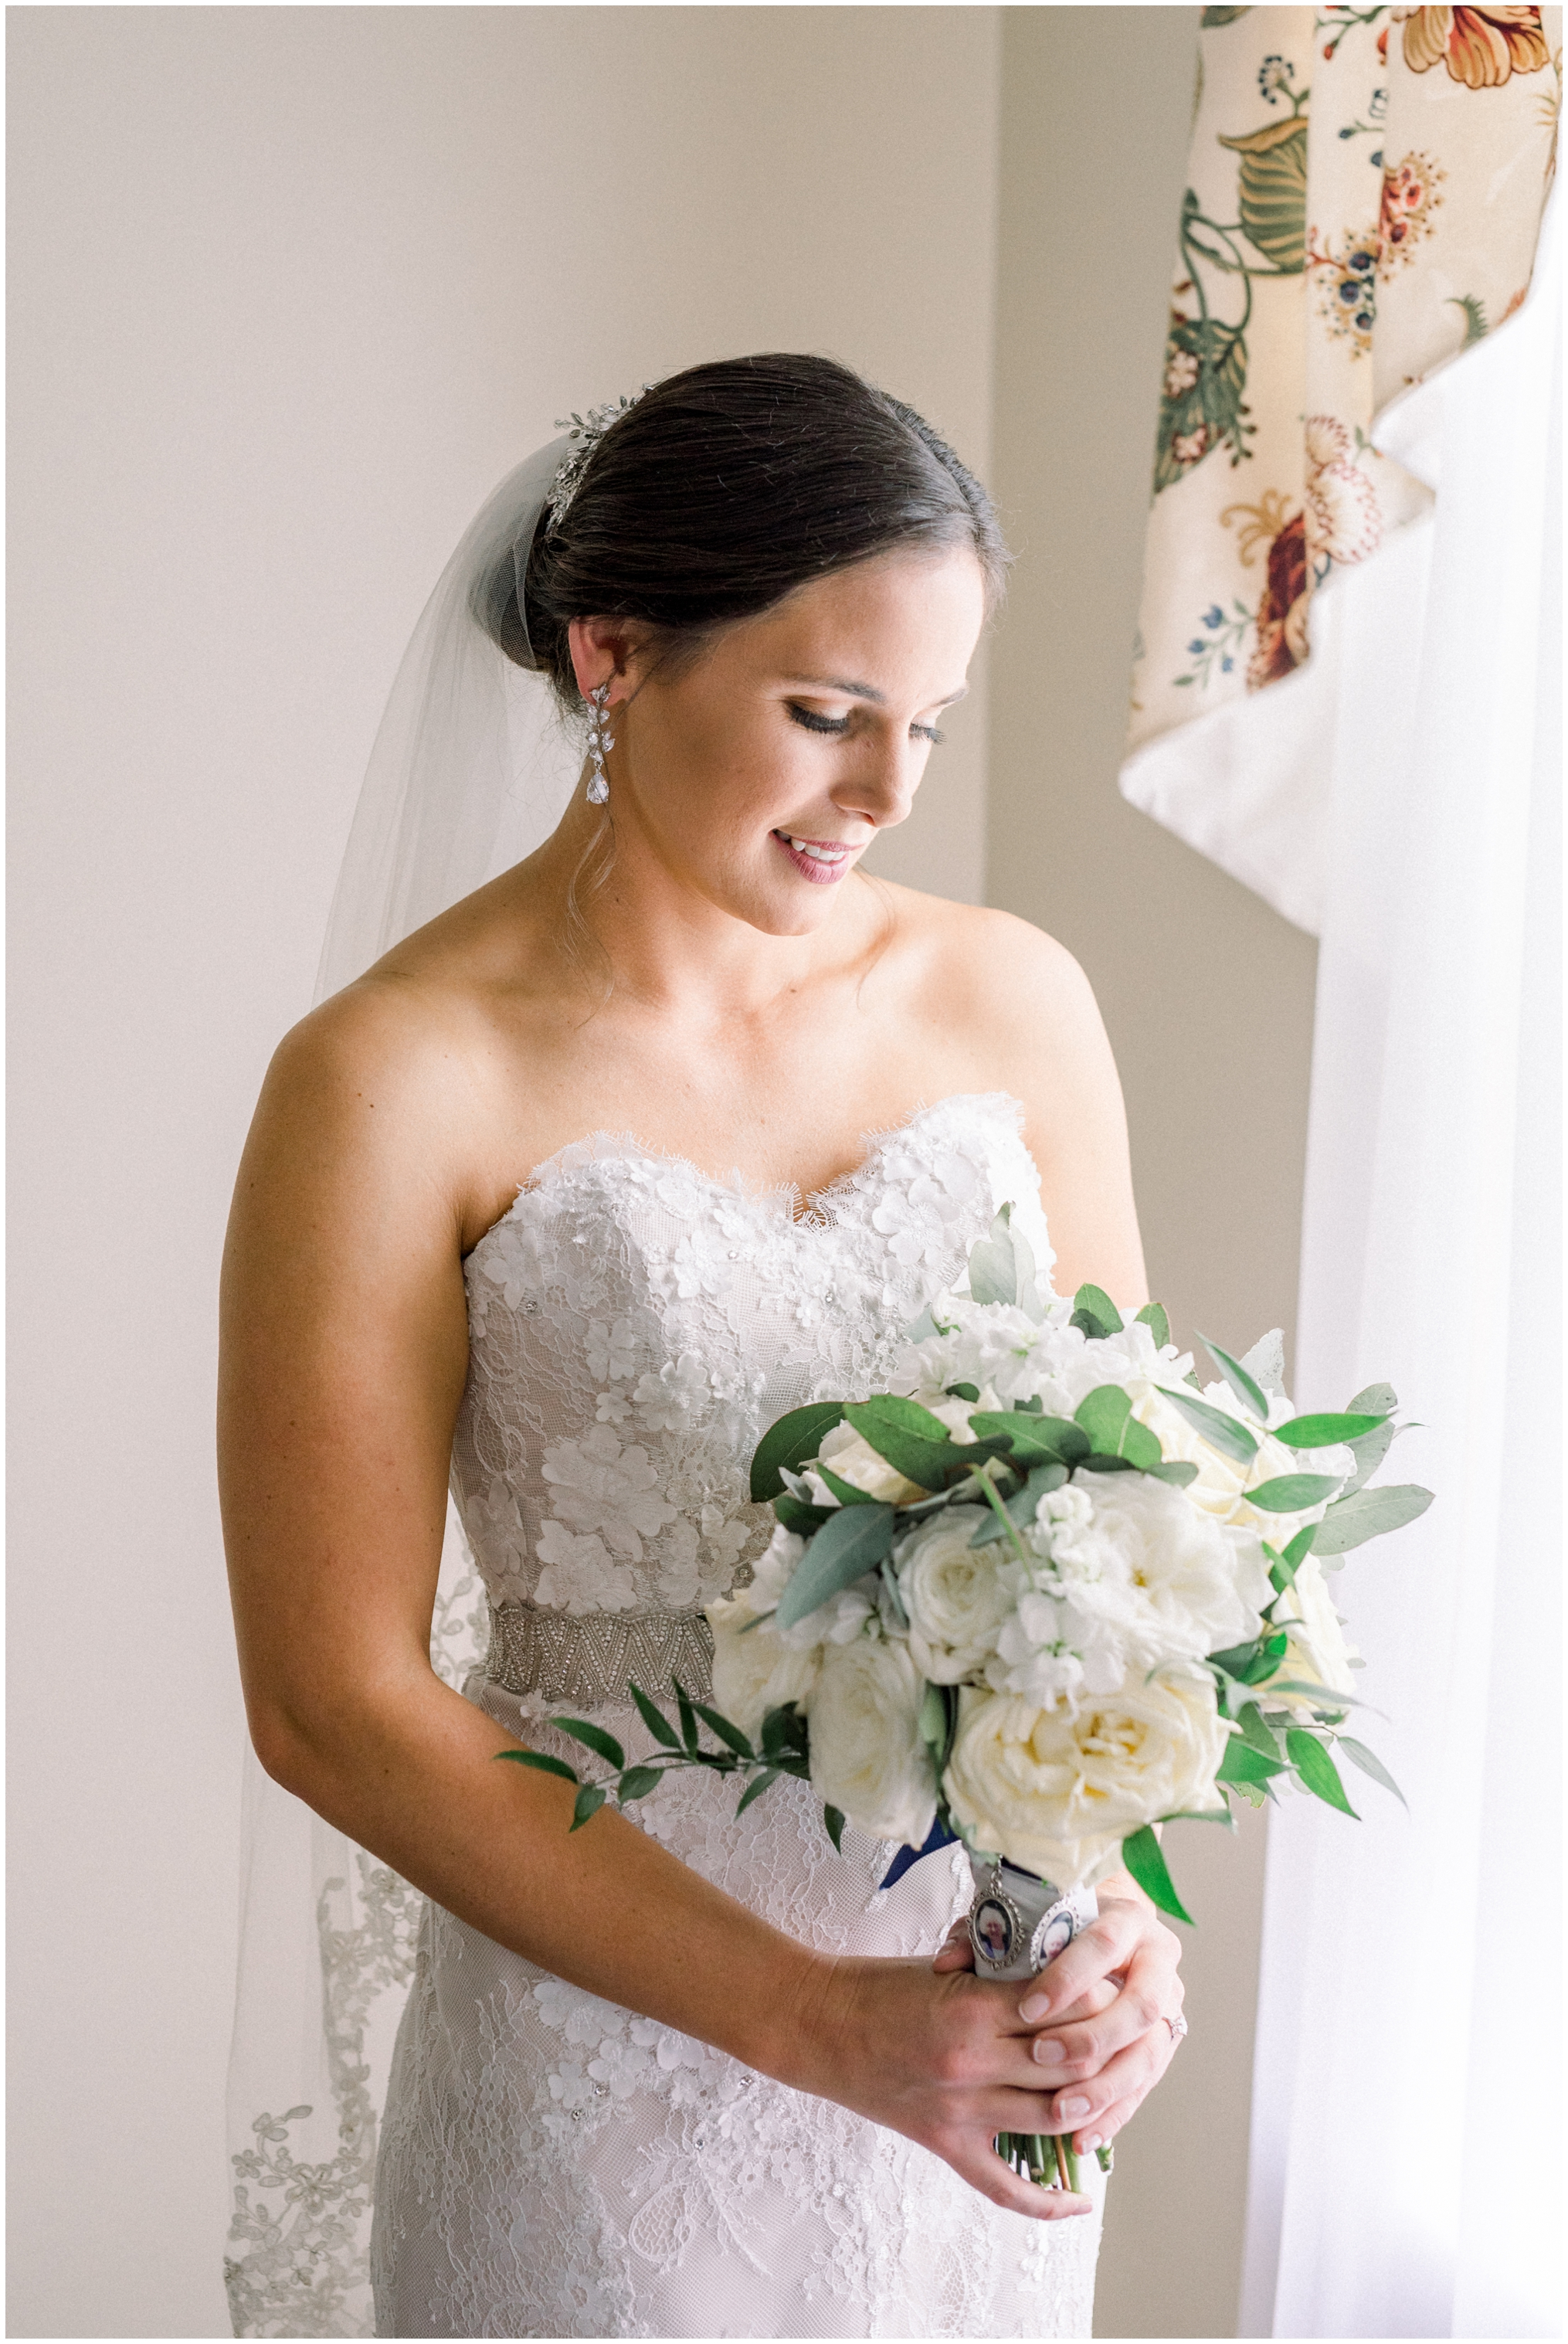 Krista Brackin Photography | April Wedding at The Carriage House at Rockwood Park_0020.jpg